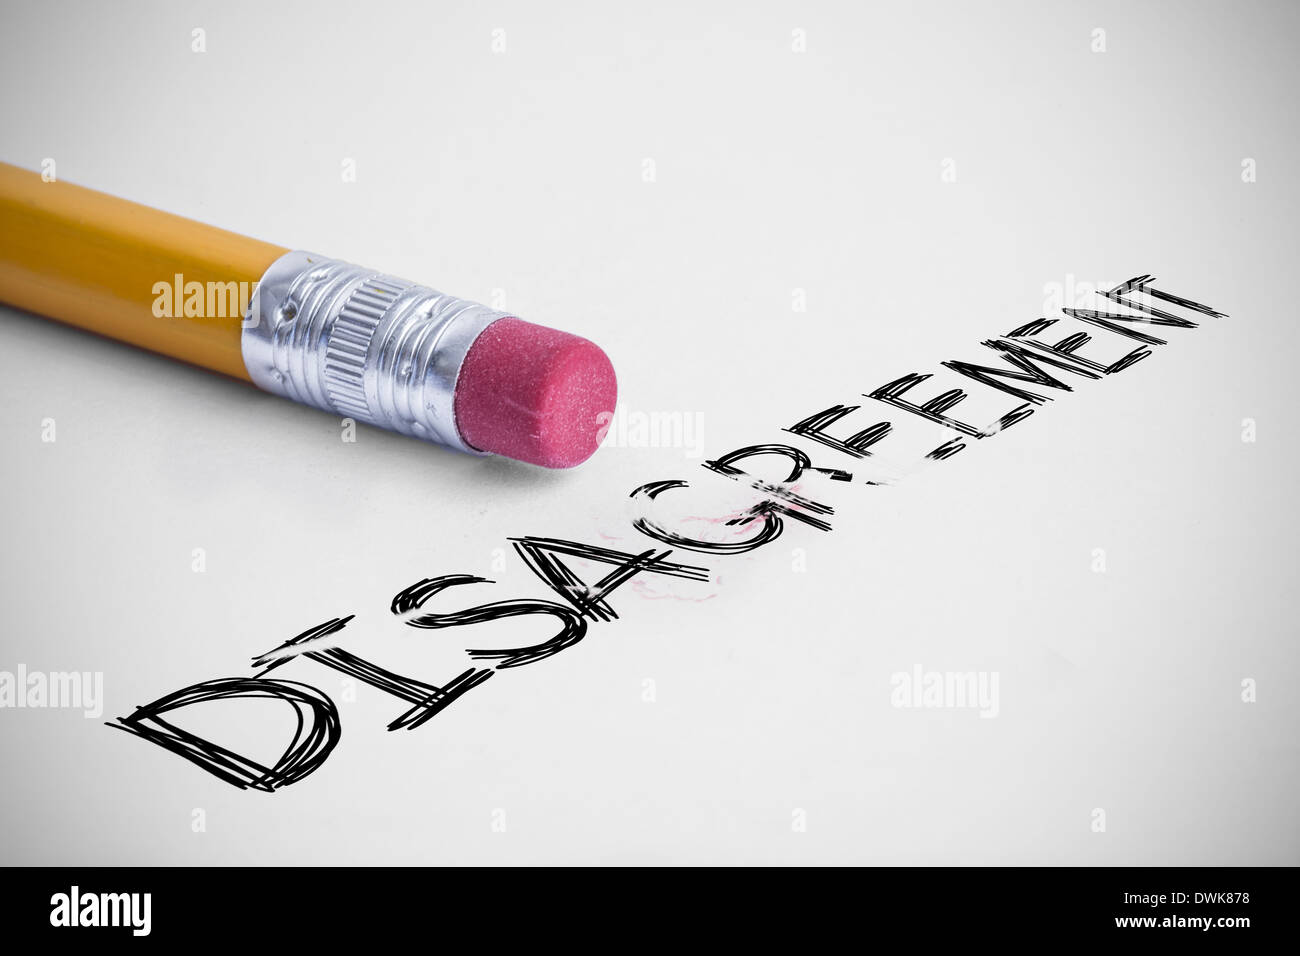 Disagreement against pencil with an eraser - Stock Image